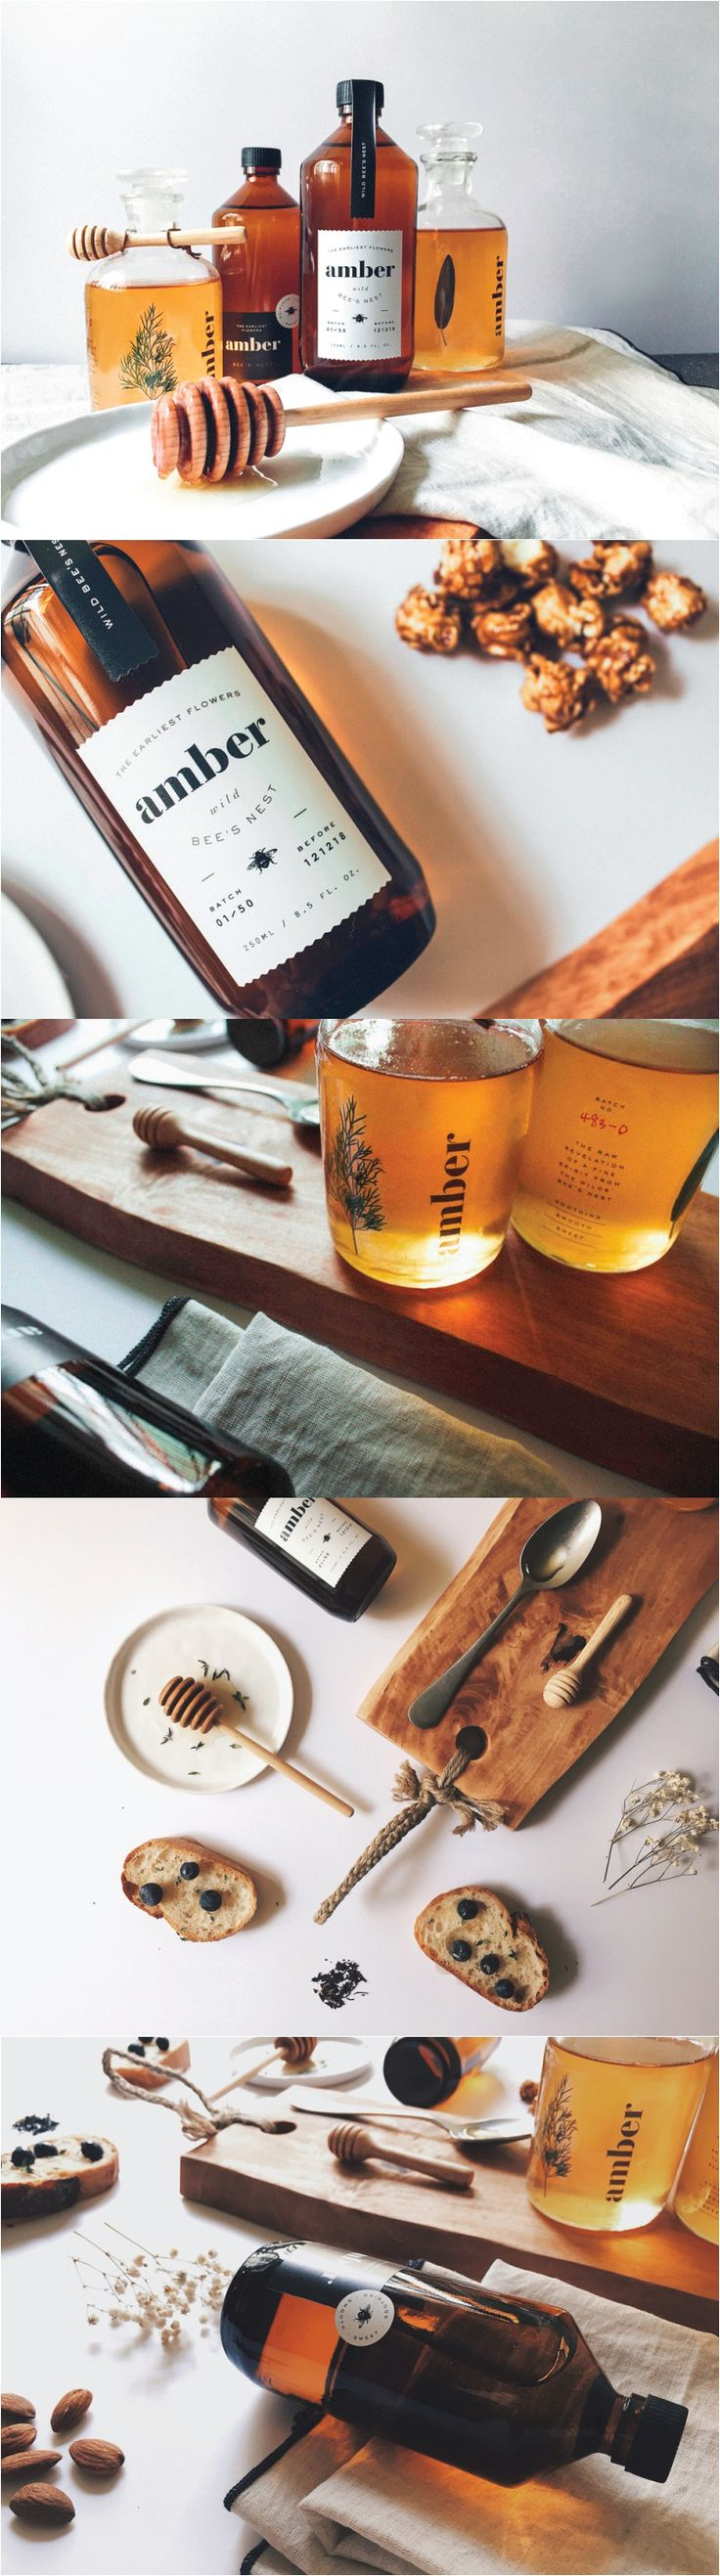 Amber Honey. A must for when having popcorn. #packaging #design (View more at www.aldenchong.com)